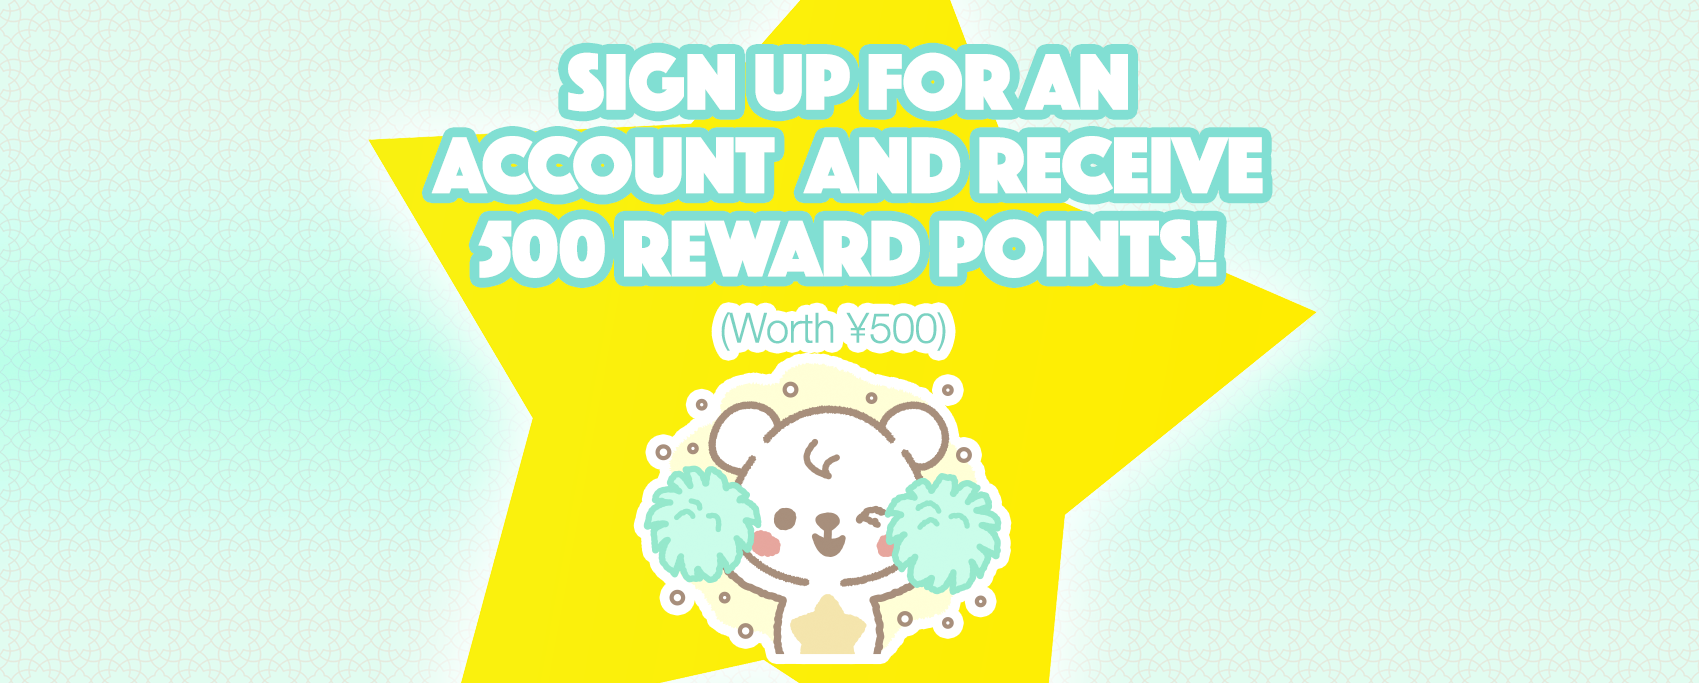 Sign up for an Account and get 500 Points!